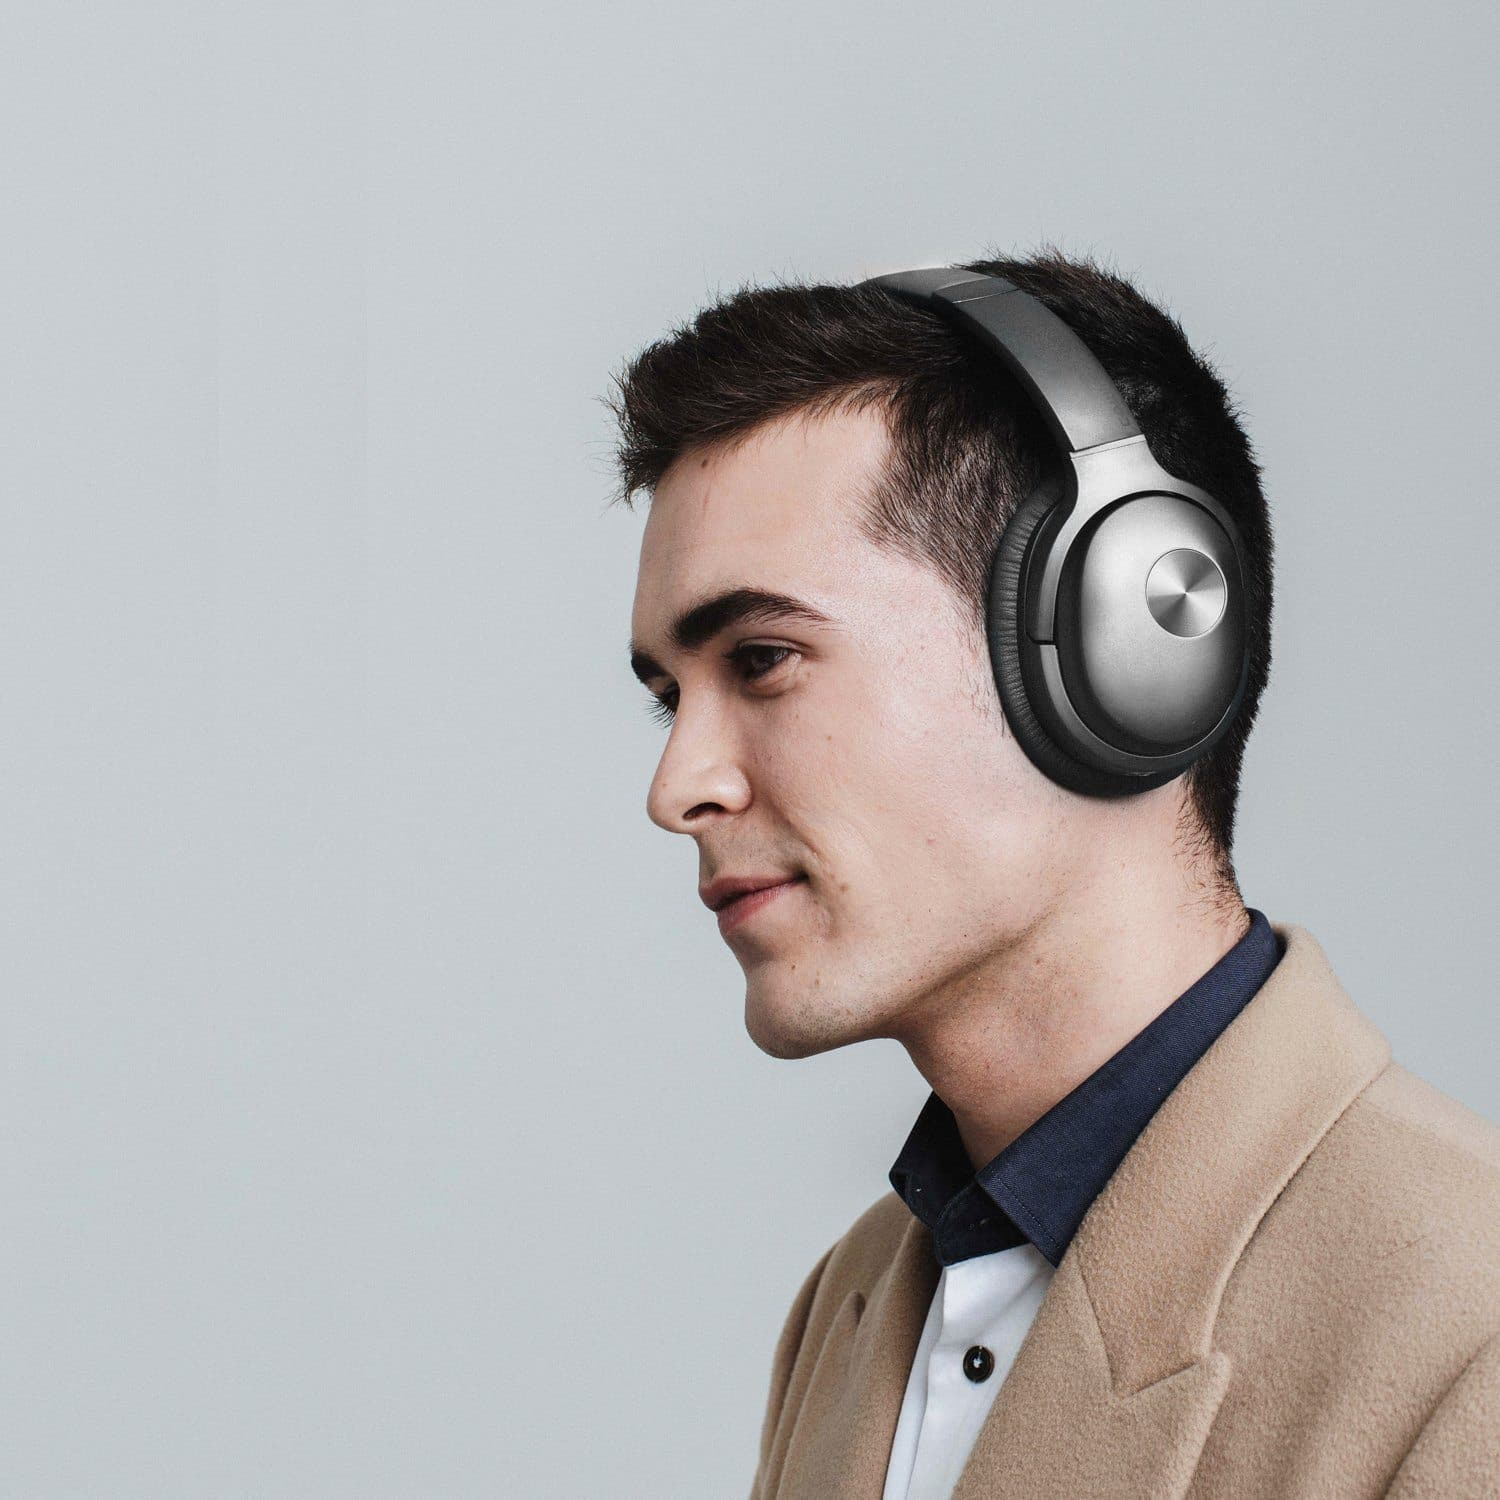 active noise cancelling headphones noise cancelling headphones noise reduction headphones wireless noise cancelling headphones bluetooth noise cancelling headphone cowin se7headphones